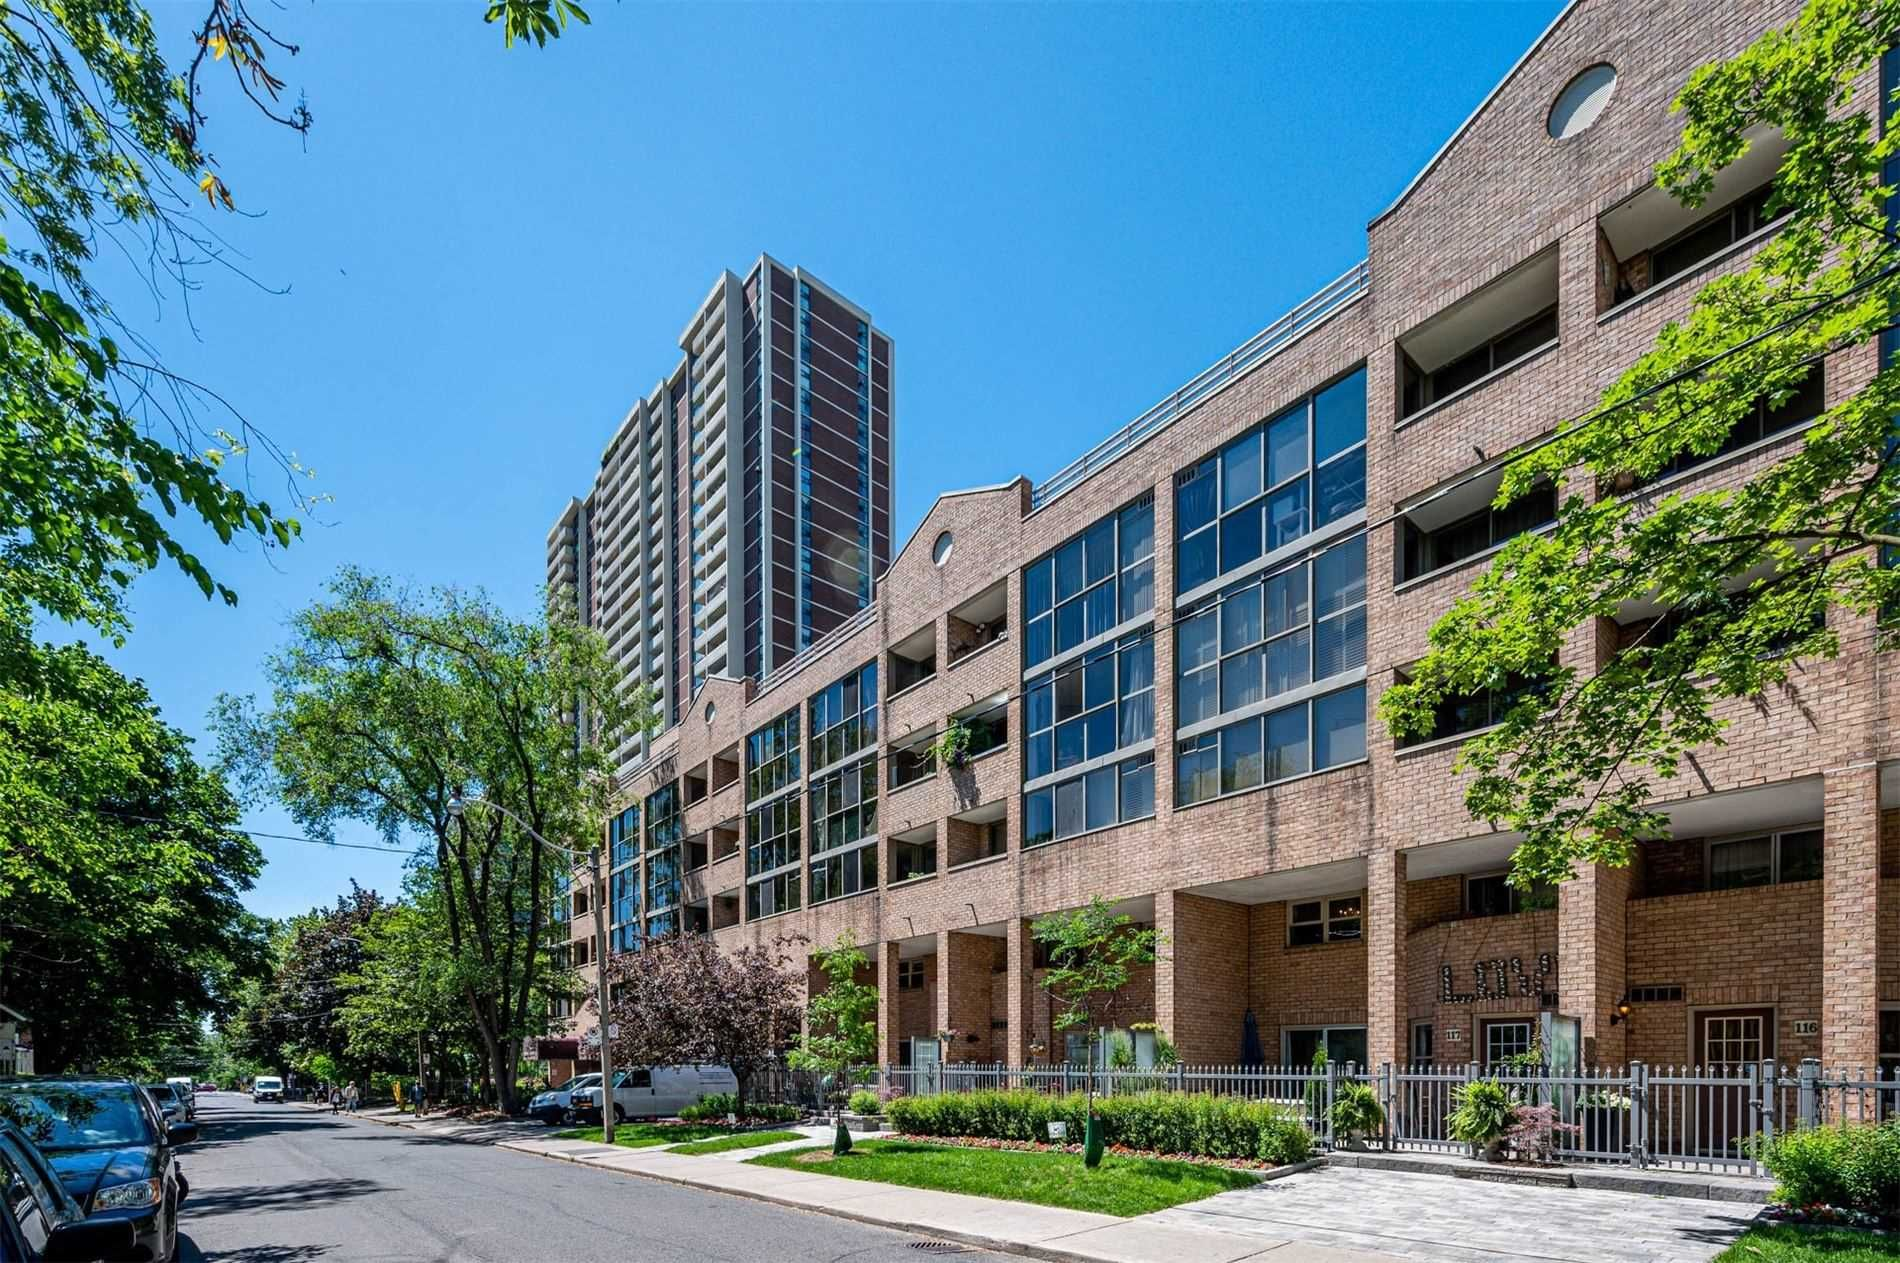 60 Homewood Ave, unit 438 for sale in Cabbagetown - image #2